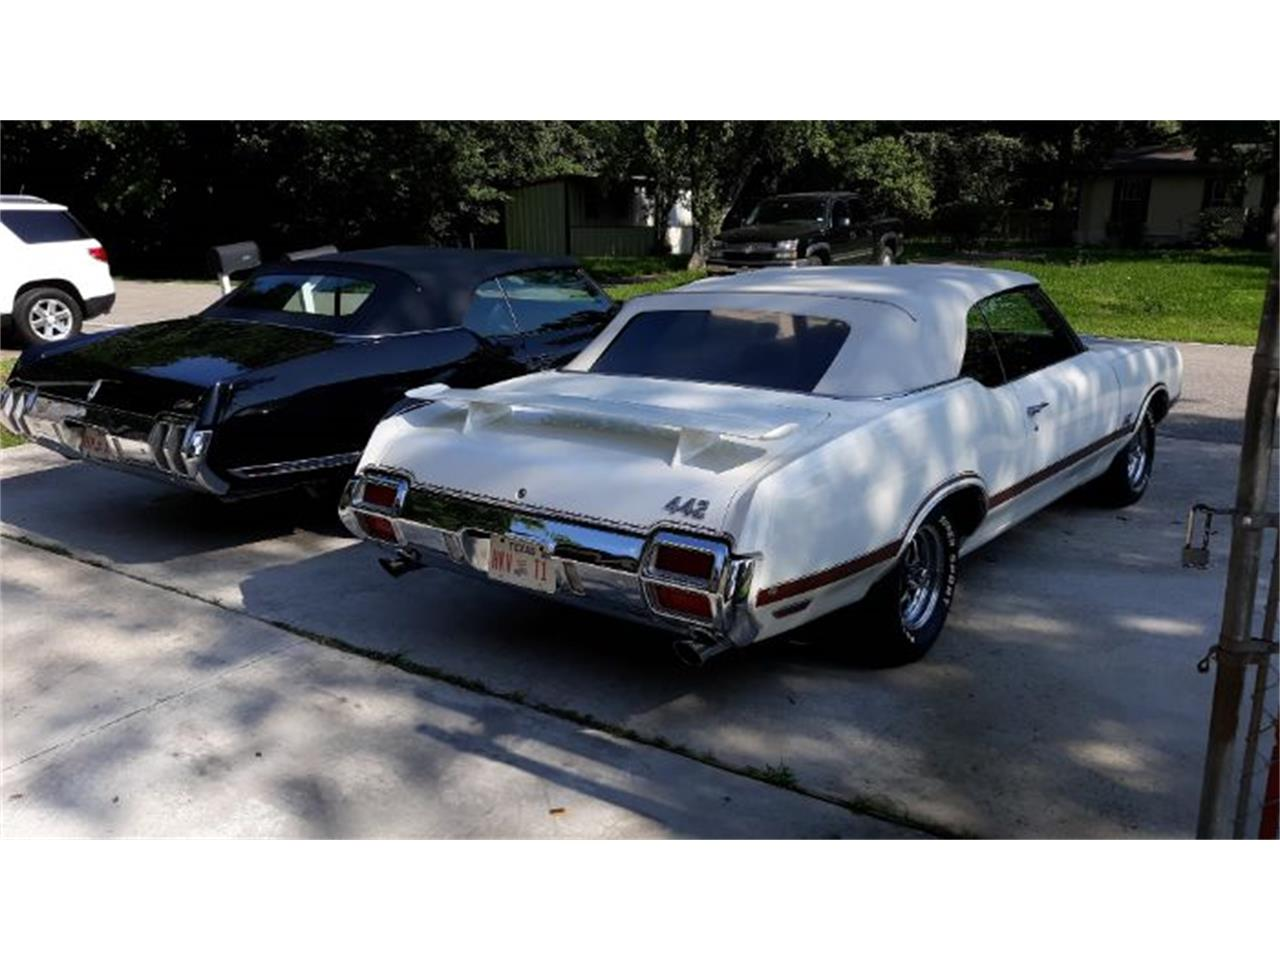 Large Picture of 1971 Oldsmobile Cutlass located in Michigan - $44,495.00 - Q4AH